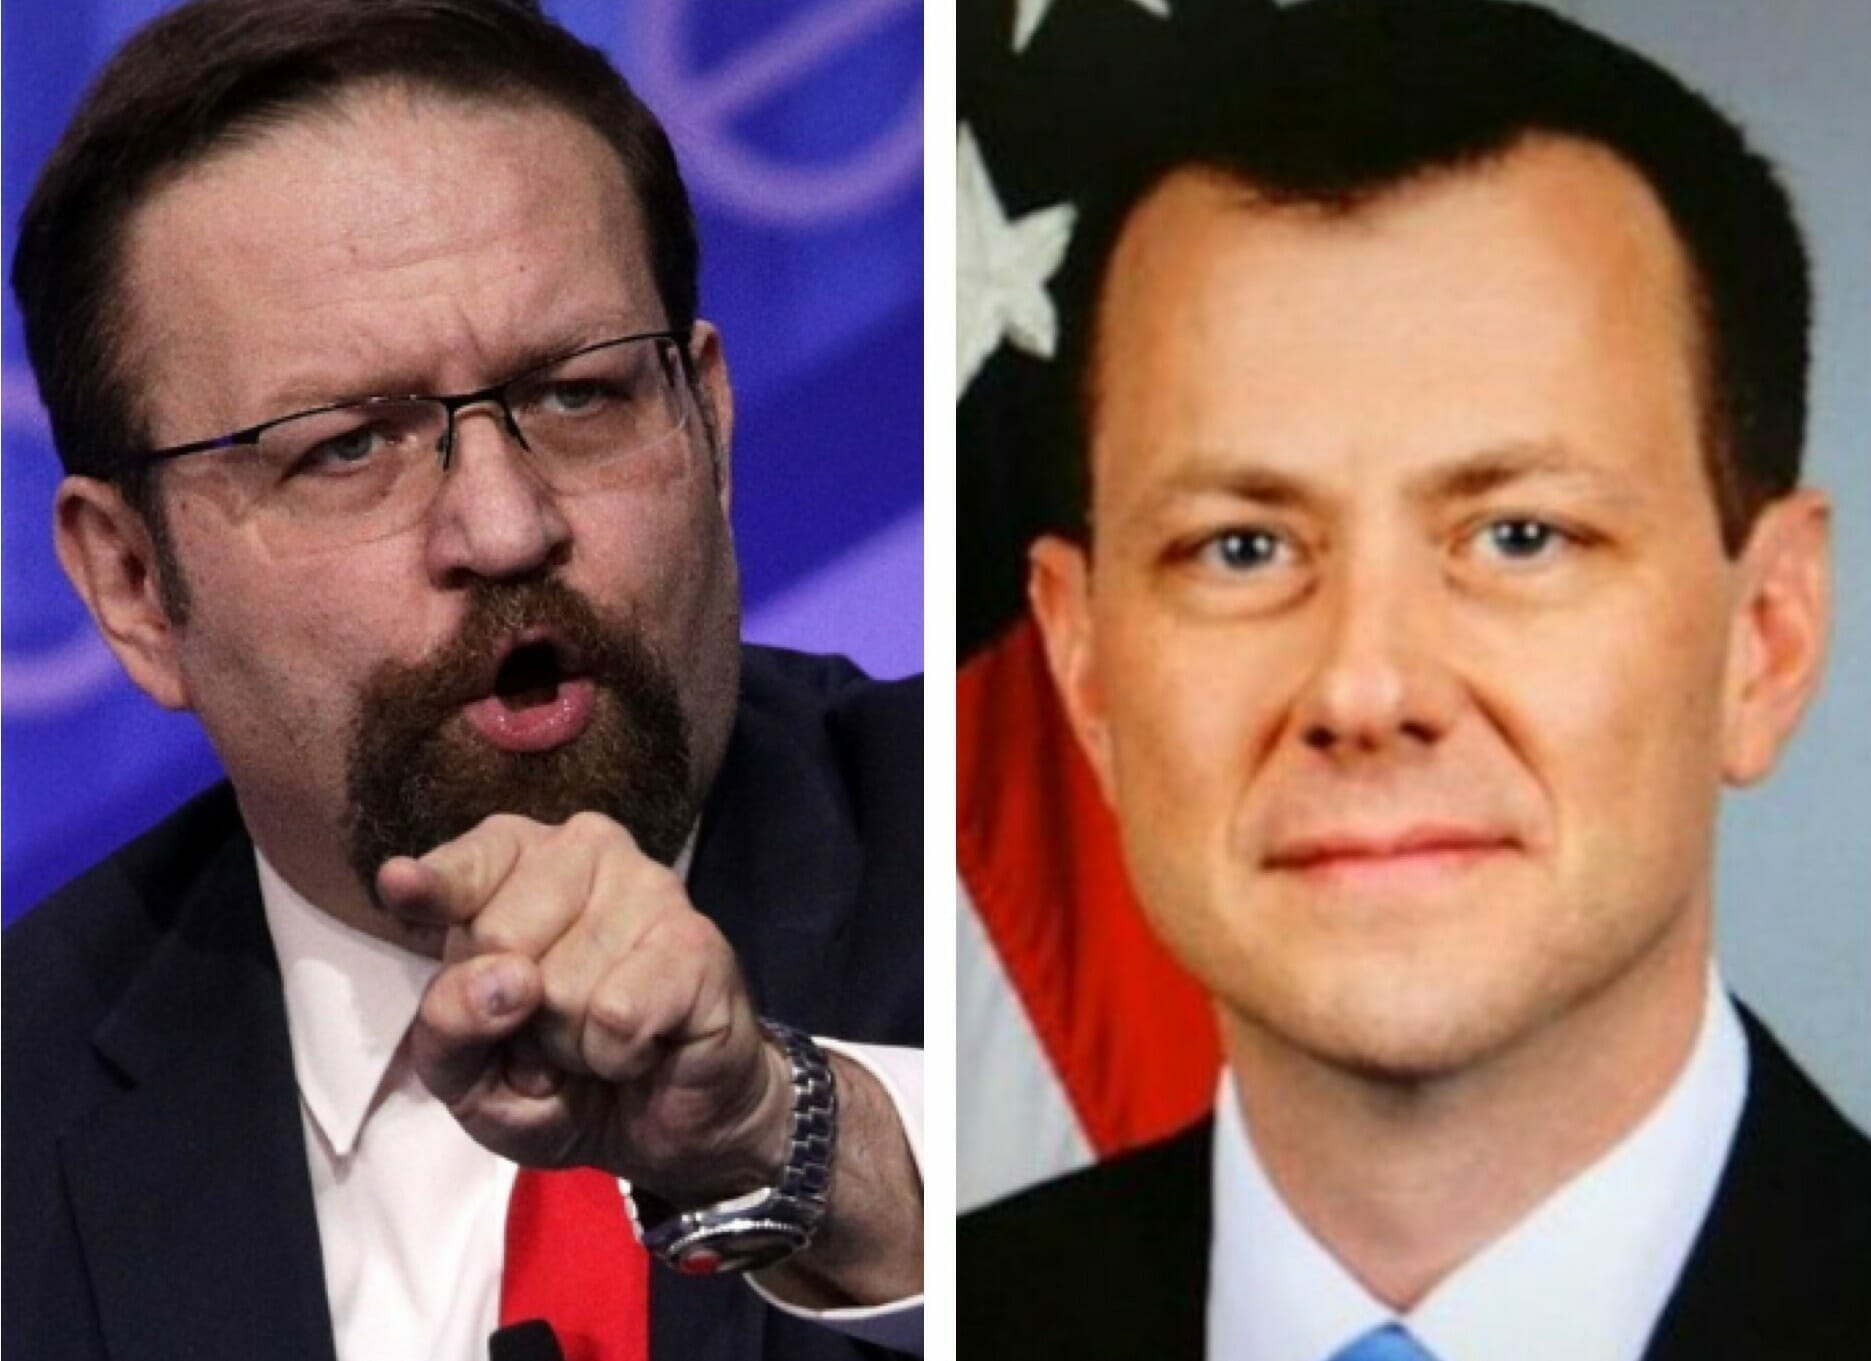 Sebastian Gorka Hammers Peter Strzok Over His Hillary-Connected Lawyer 'How Does Strzok Afford Expensive DC Lawyer on FBI Salary?'